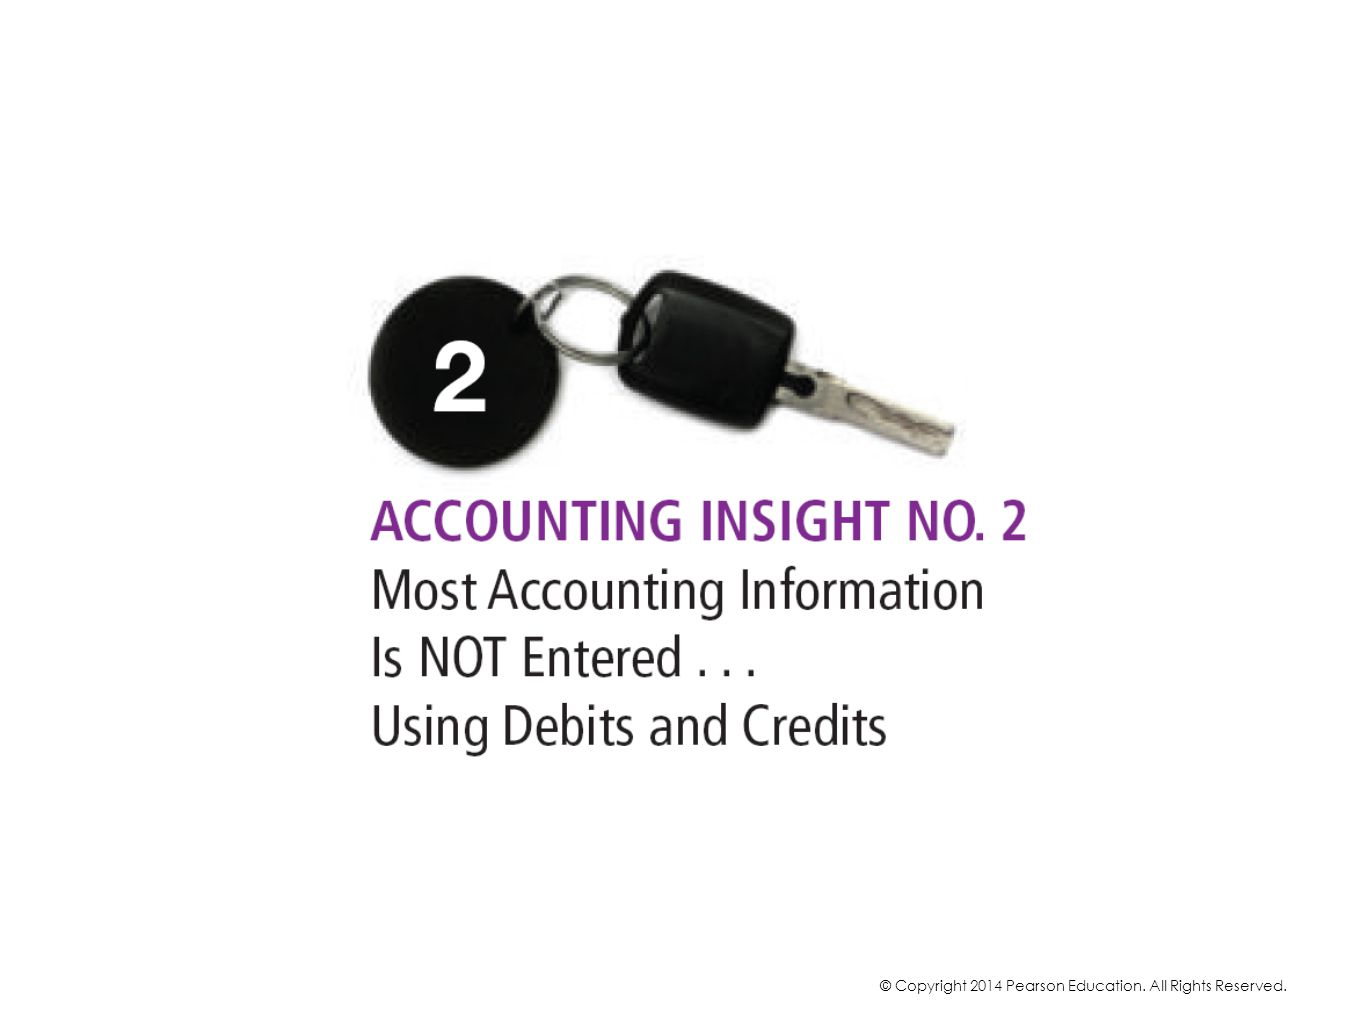 When entering accounting information into an accounting system, debits and credits are usually NOT used. Typically, debits and credits are used for journal entries only to make adjustments and corrections.